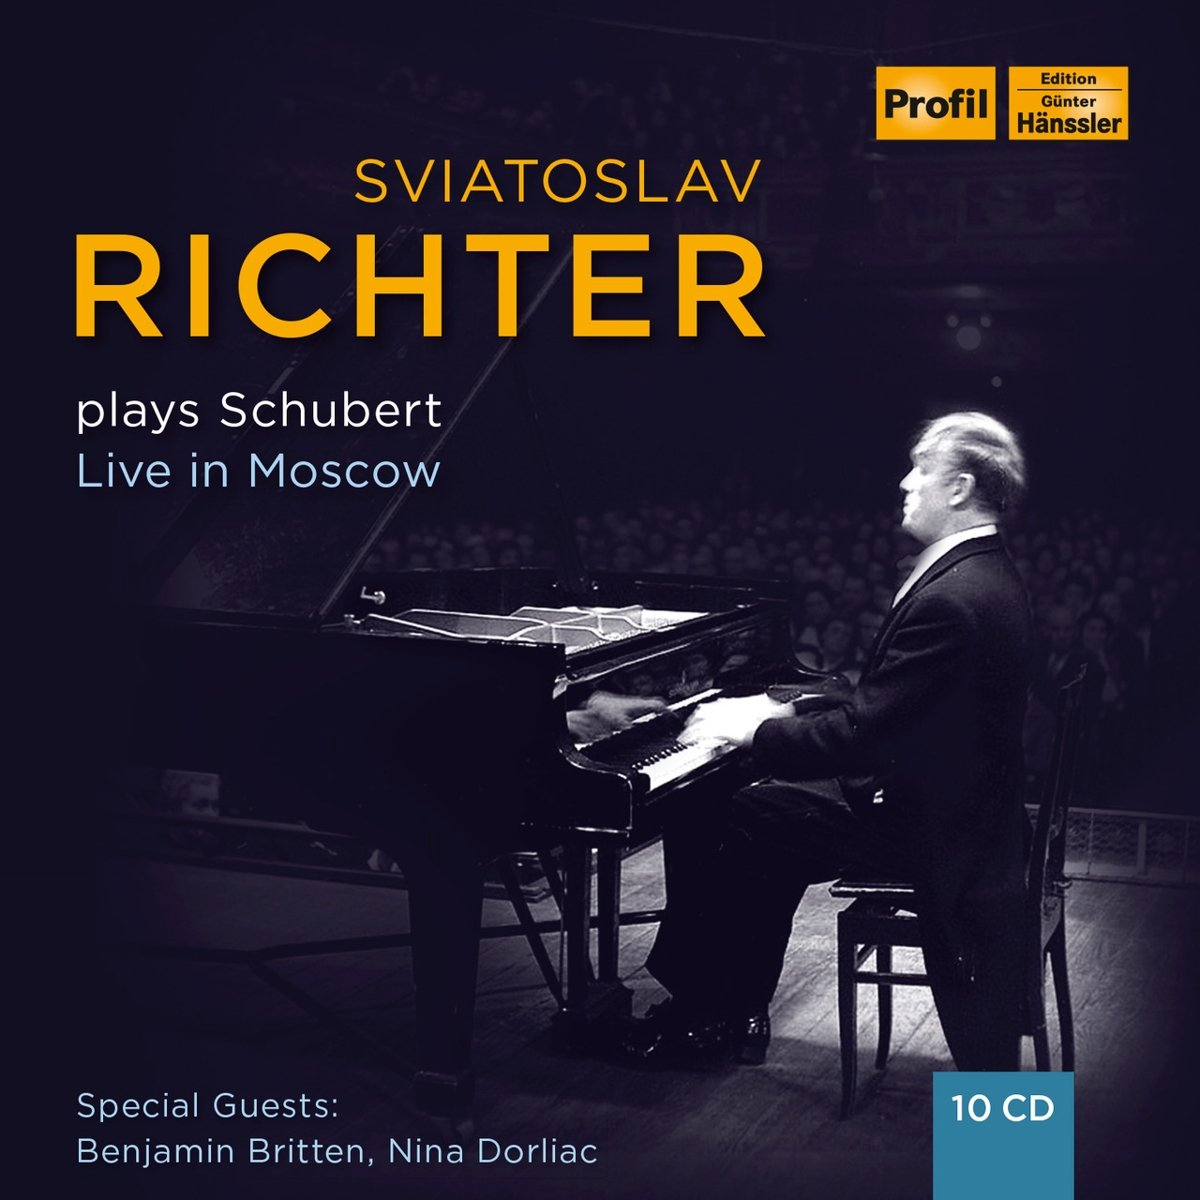 Svjatoslav Richter Plays Schubert - Live in Moscow (Box Set) by Profil